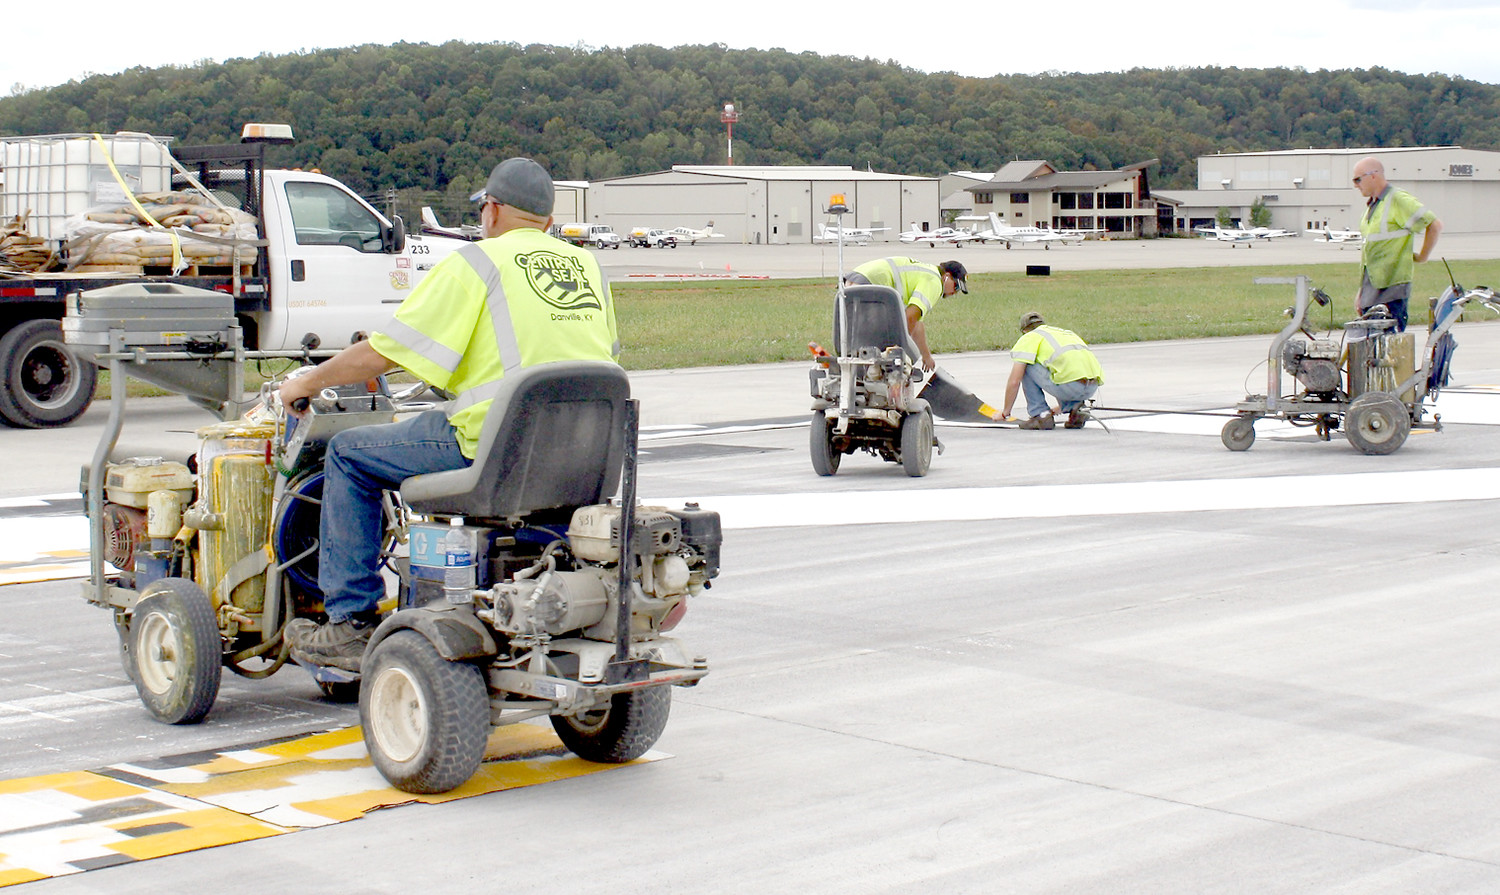 HINKLE CONSTRUCTION workers were busy Sunday laying threshold markings and numbers for the Cleveland Jetport's new runway extension. The 700-foot construction project is lengthening the landing/departure surface to 6,200 feet. The Jetport terminal is in the background.